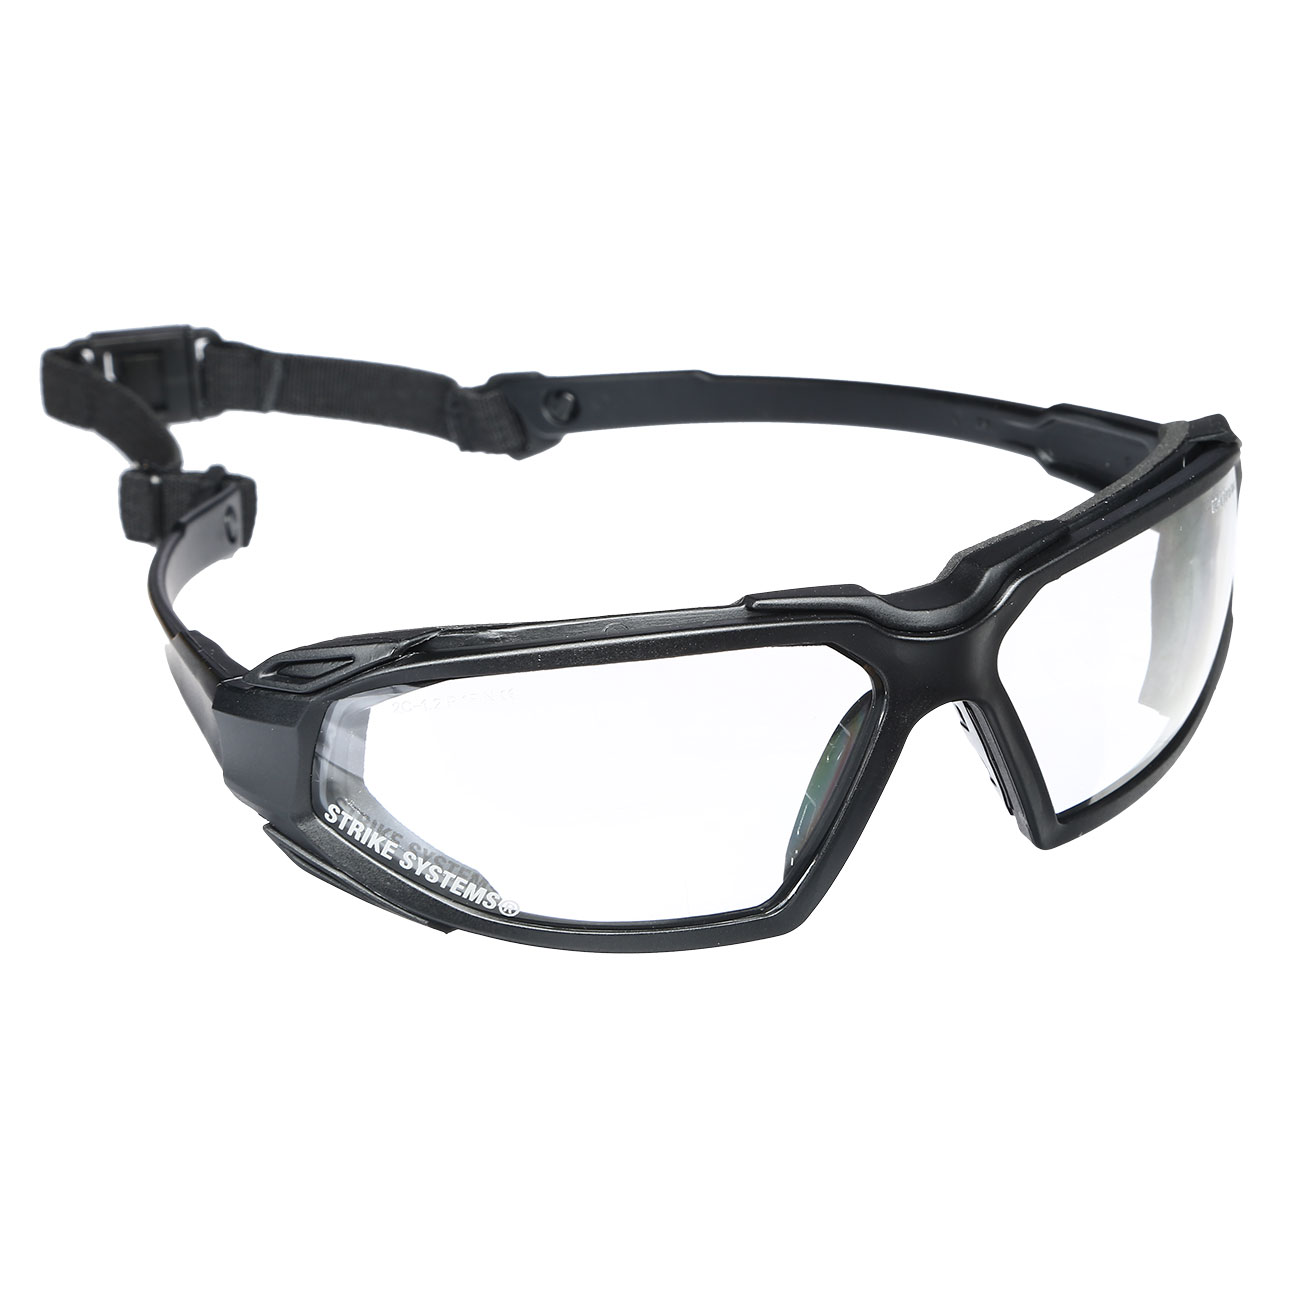 Strike Systems Tactical Schutzbrille klar 1